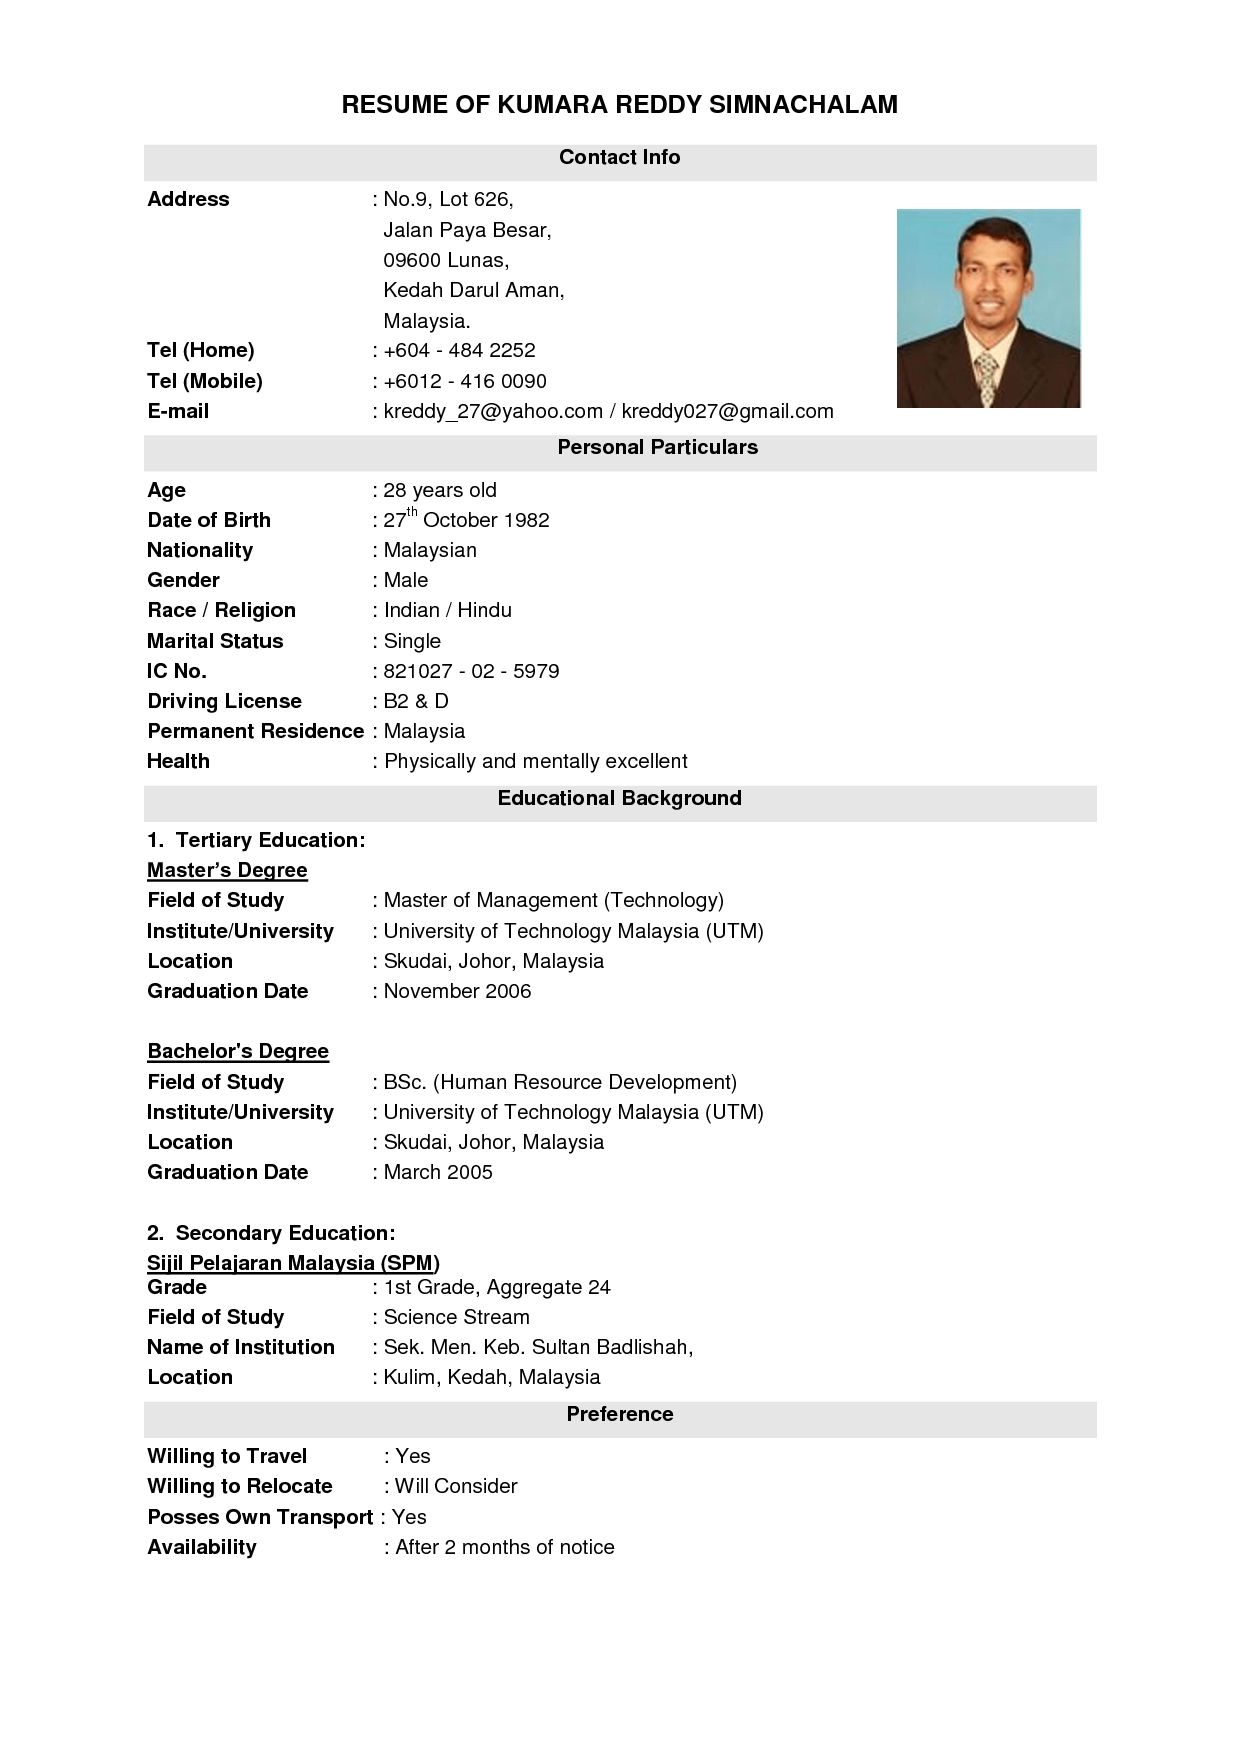 Resume Template Sample Singapore how to write cover letter – Resume Format Singapore